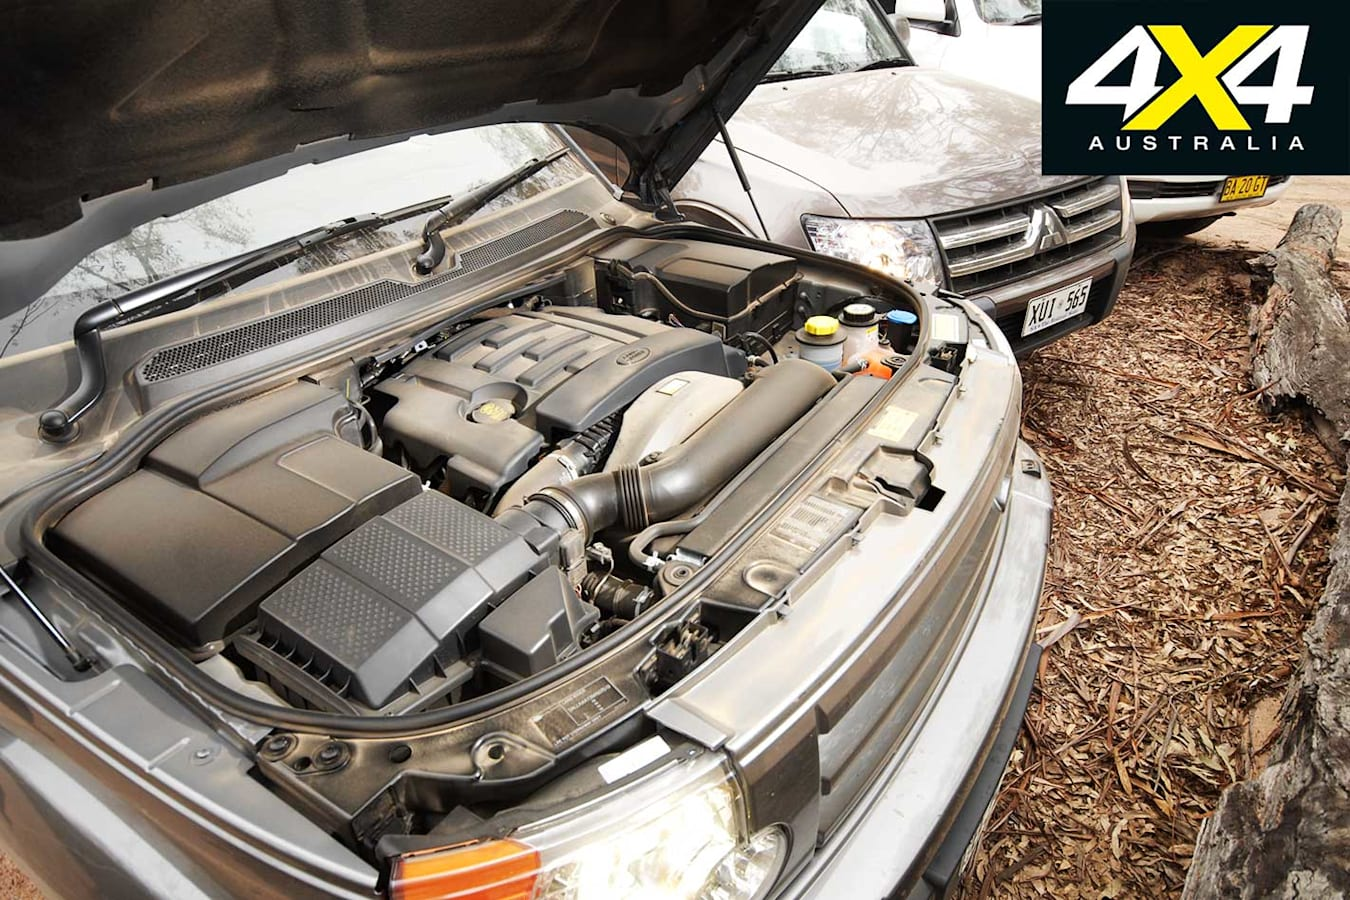 2009 Land Rover Discovery 3 Engine Jpg